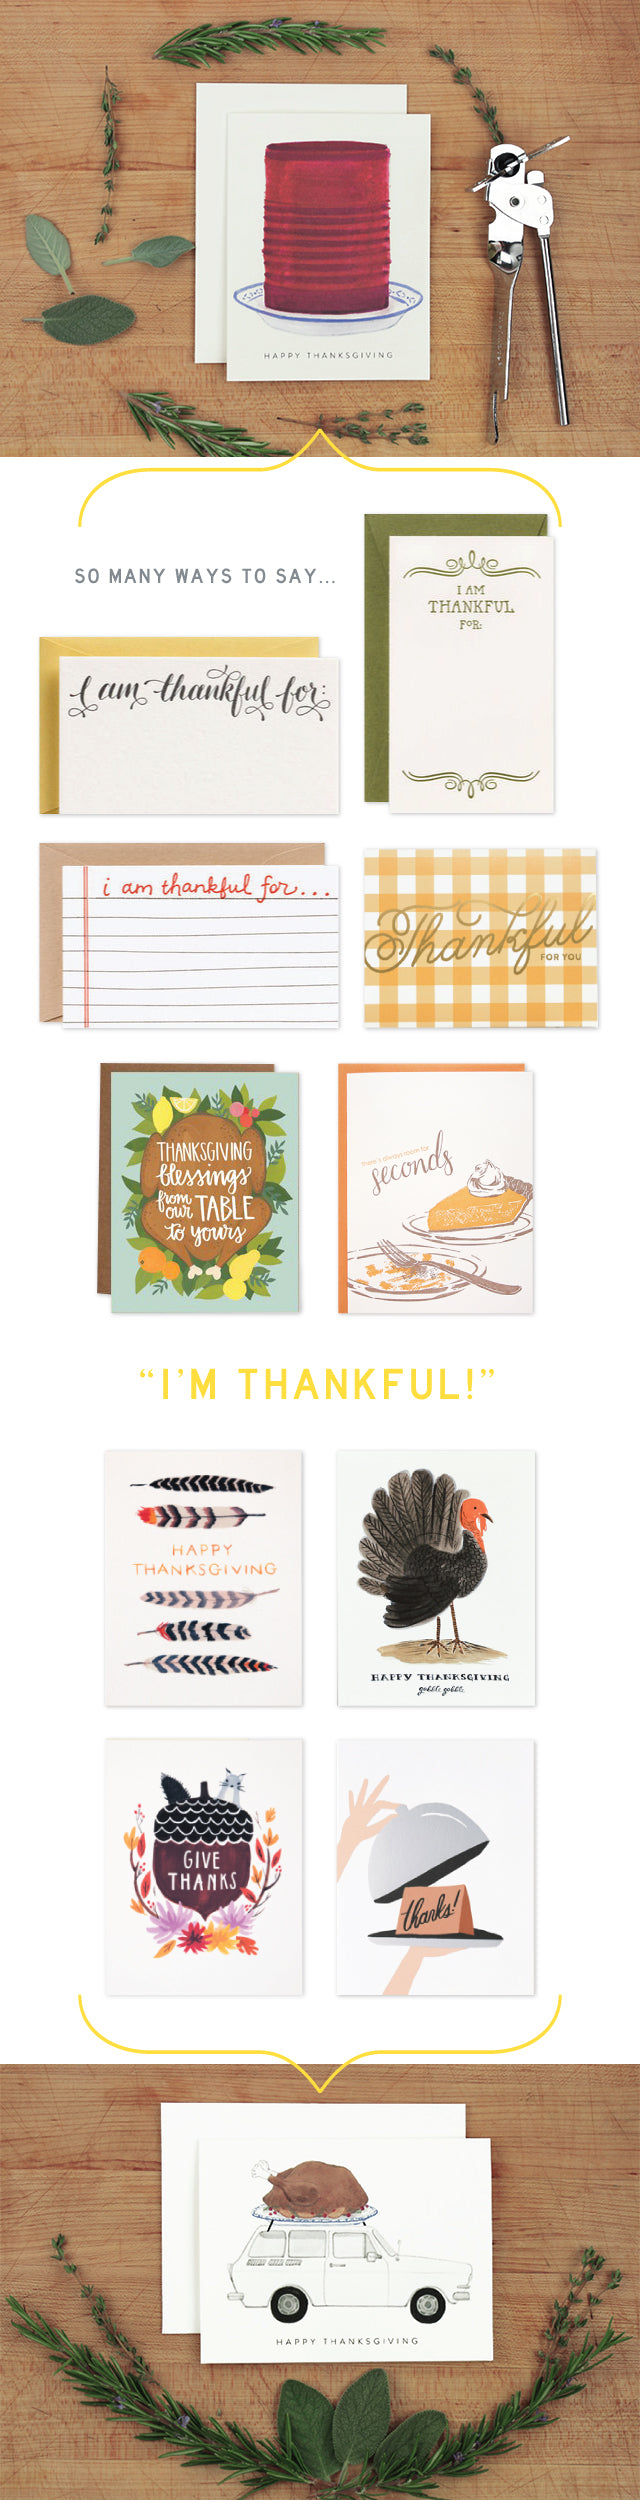 urbanic_paper_parcelpost_holiday_fall_thanksgiving_cards_snailmail